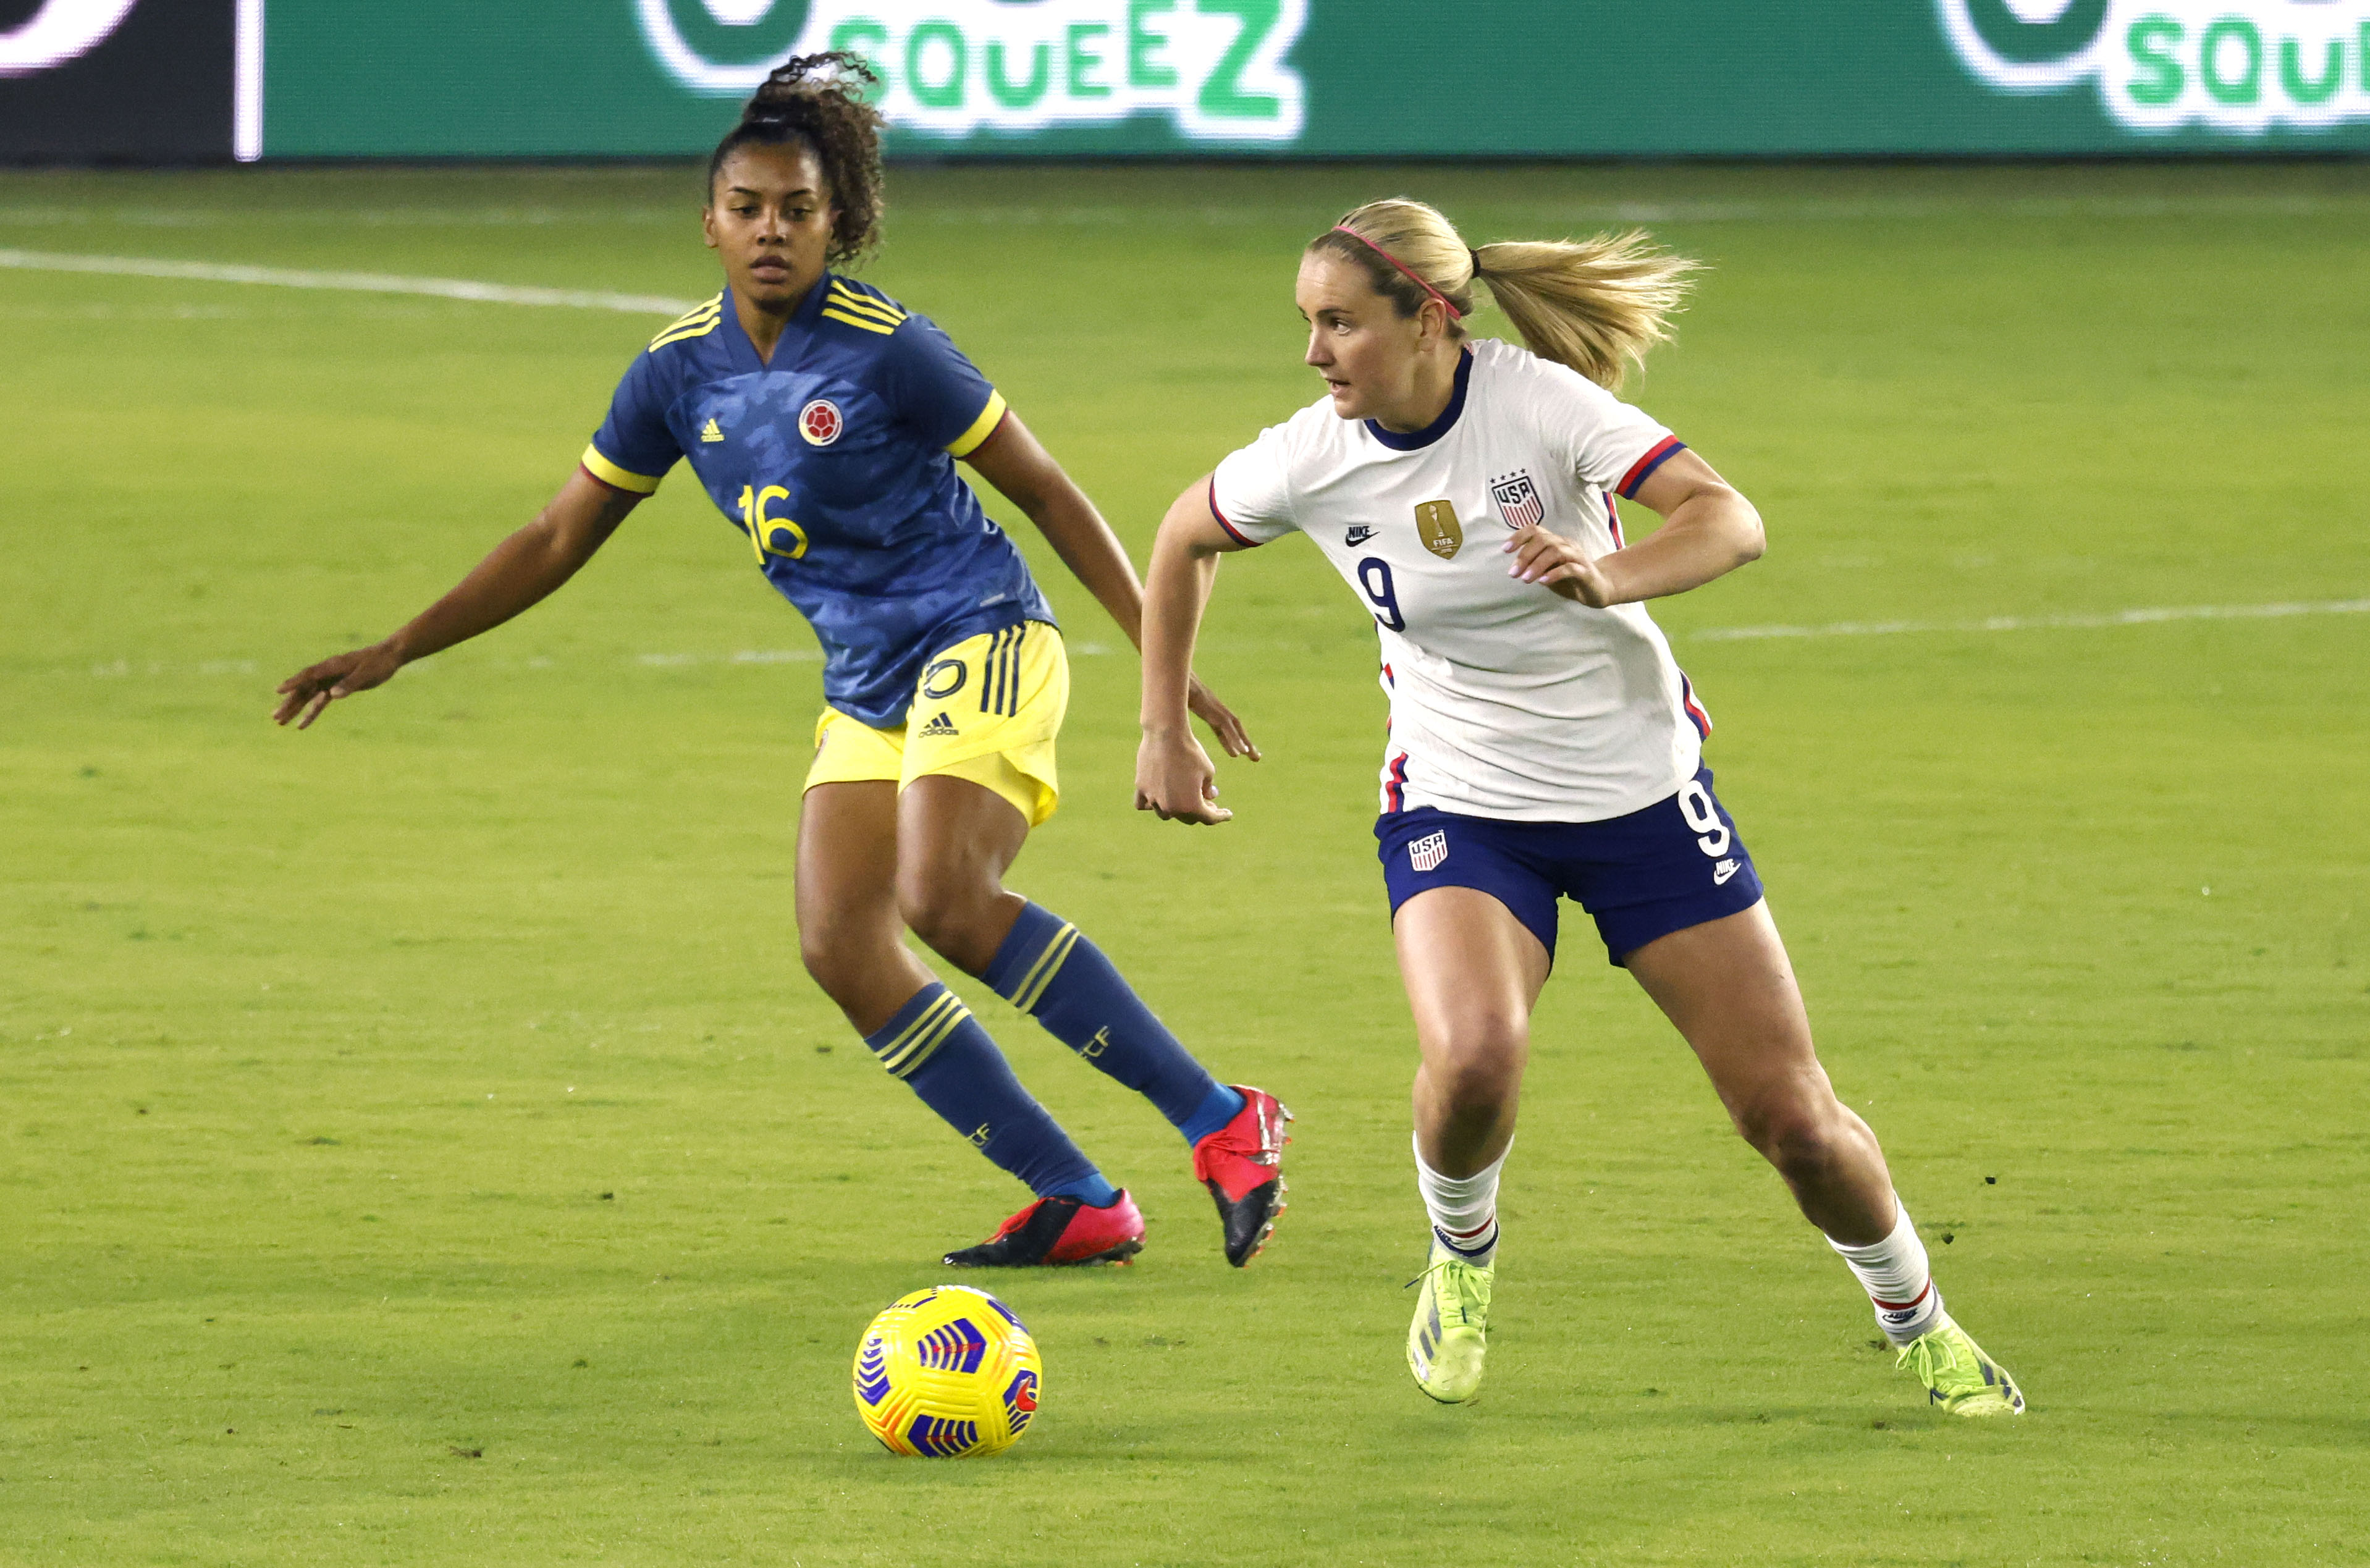 Soccer: U.S. Women's National Team International Friendly Soccer-Colombia at USA